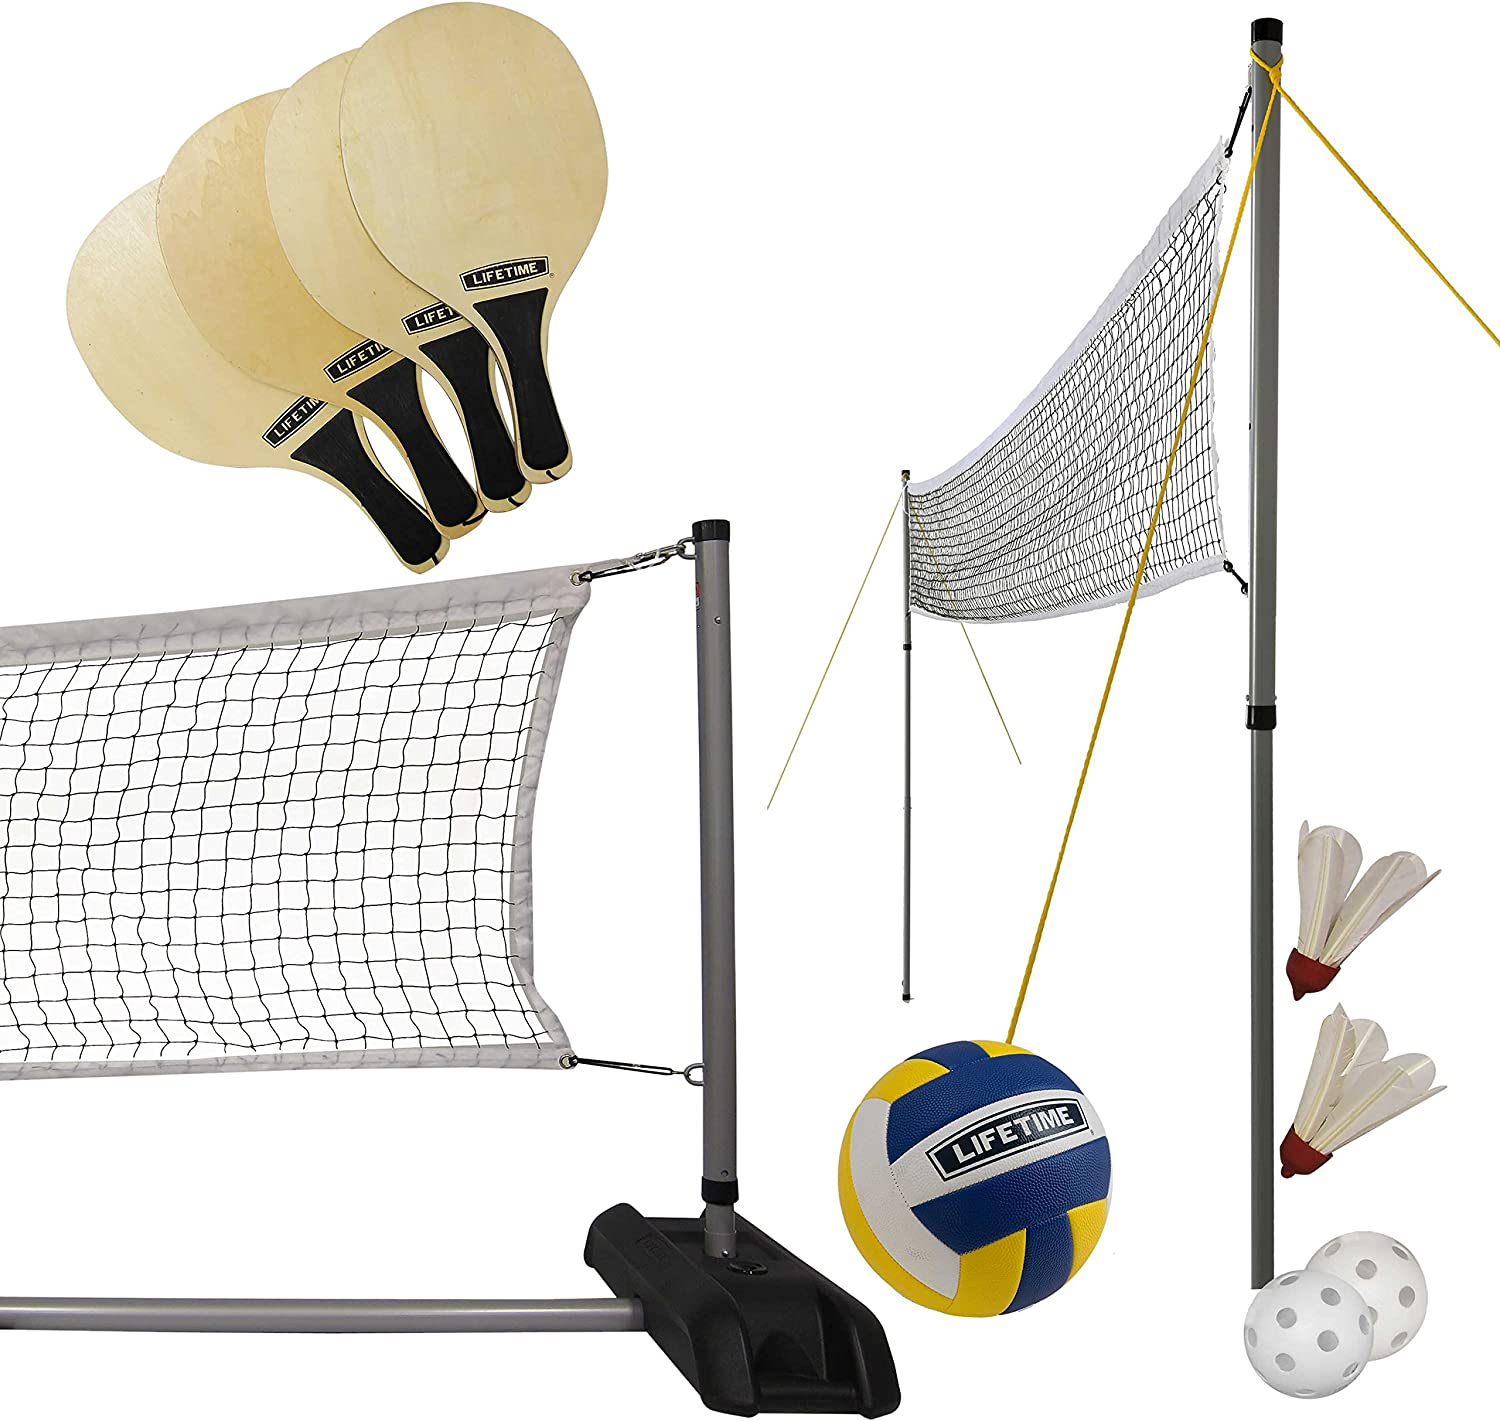 Lifetime Sports Net 3 en 1 Voleibol / Bádminton / Pickleball ...